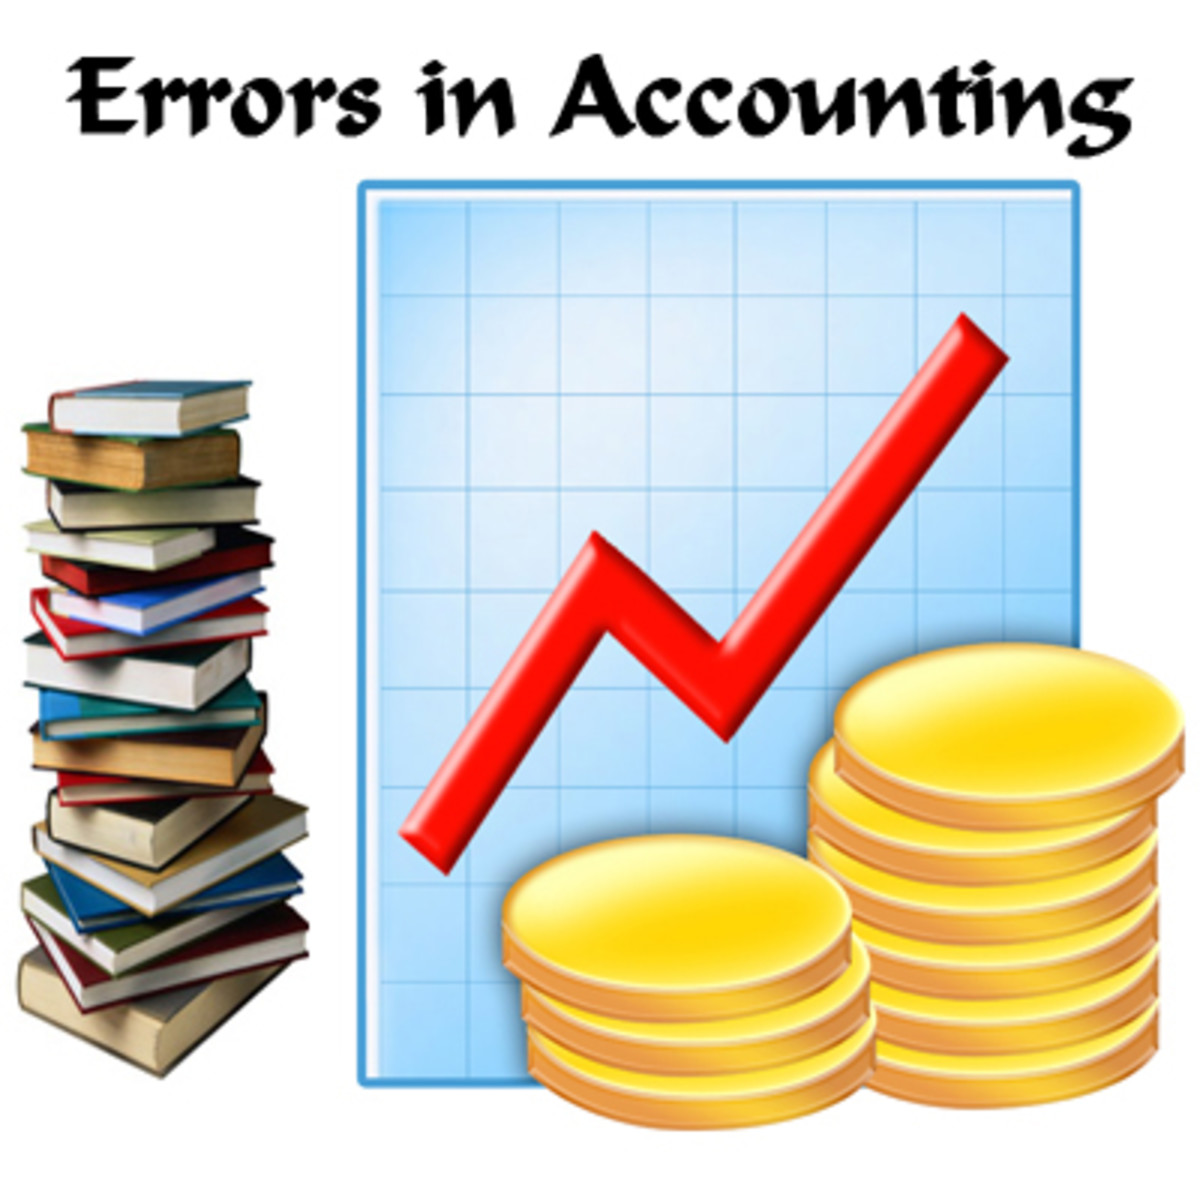 Errors in Accounting